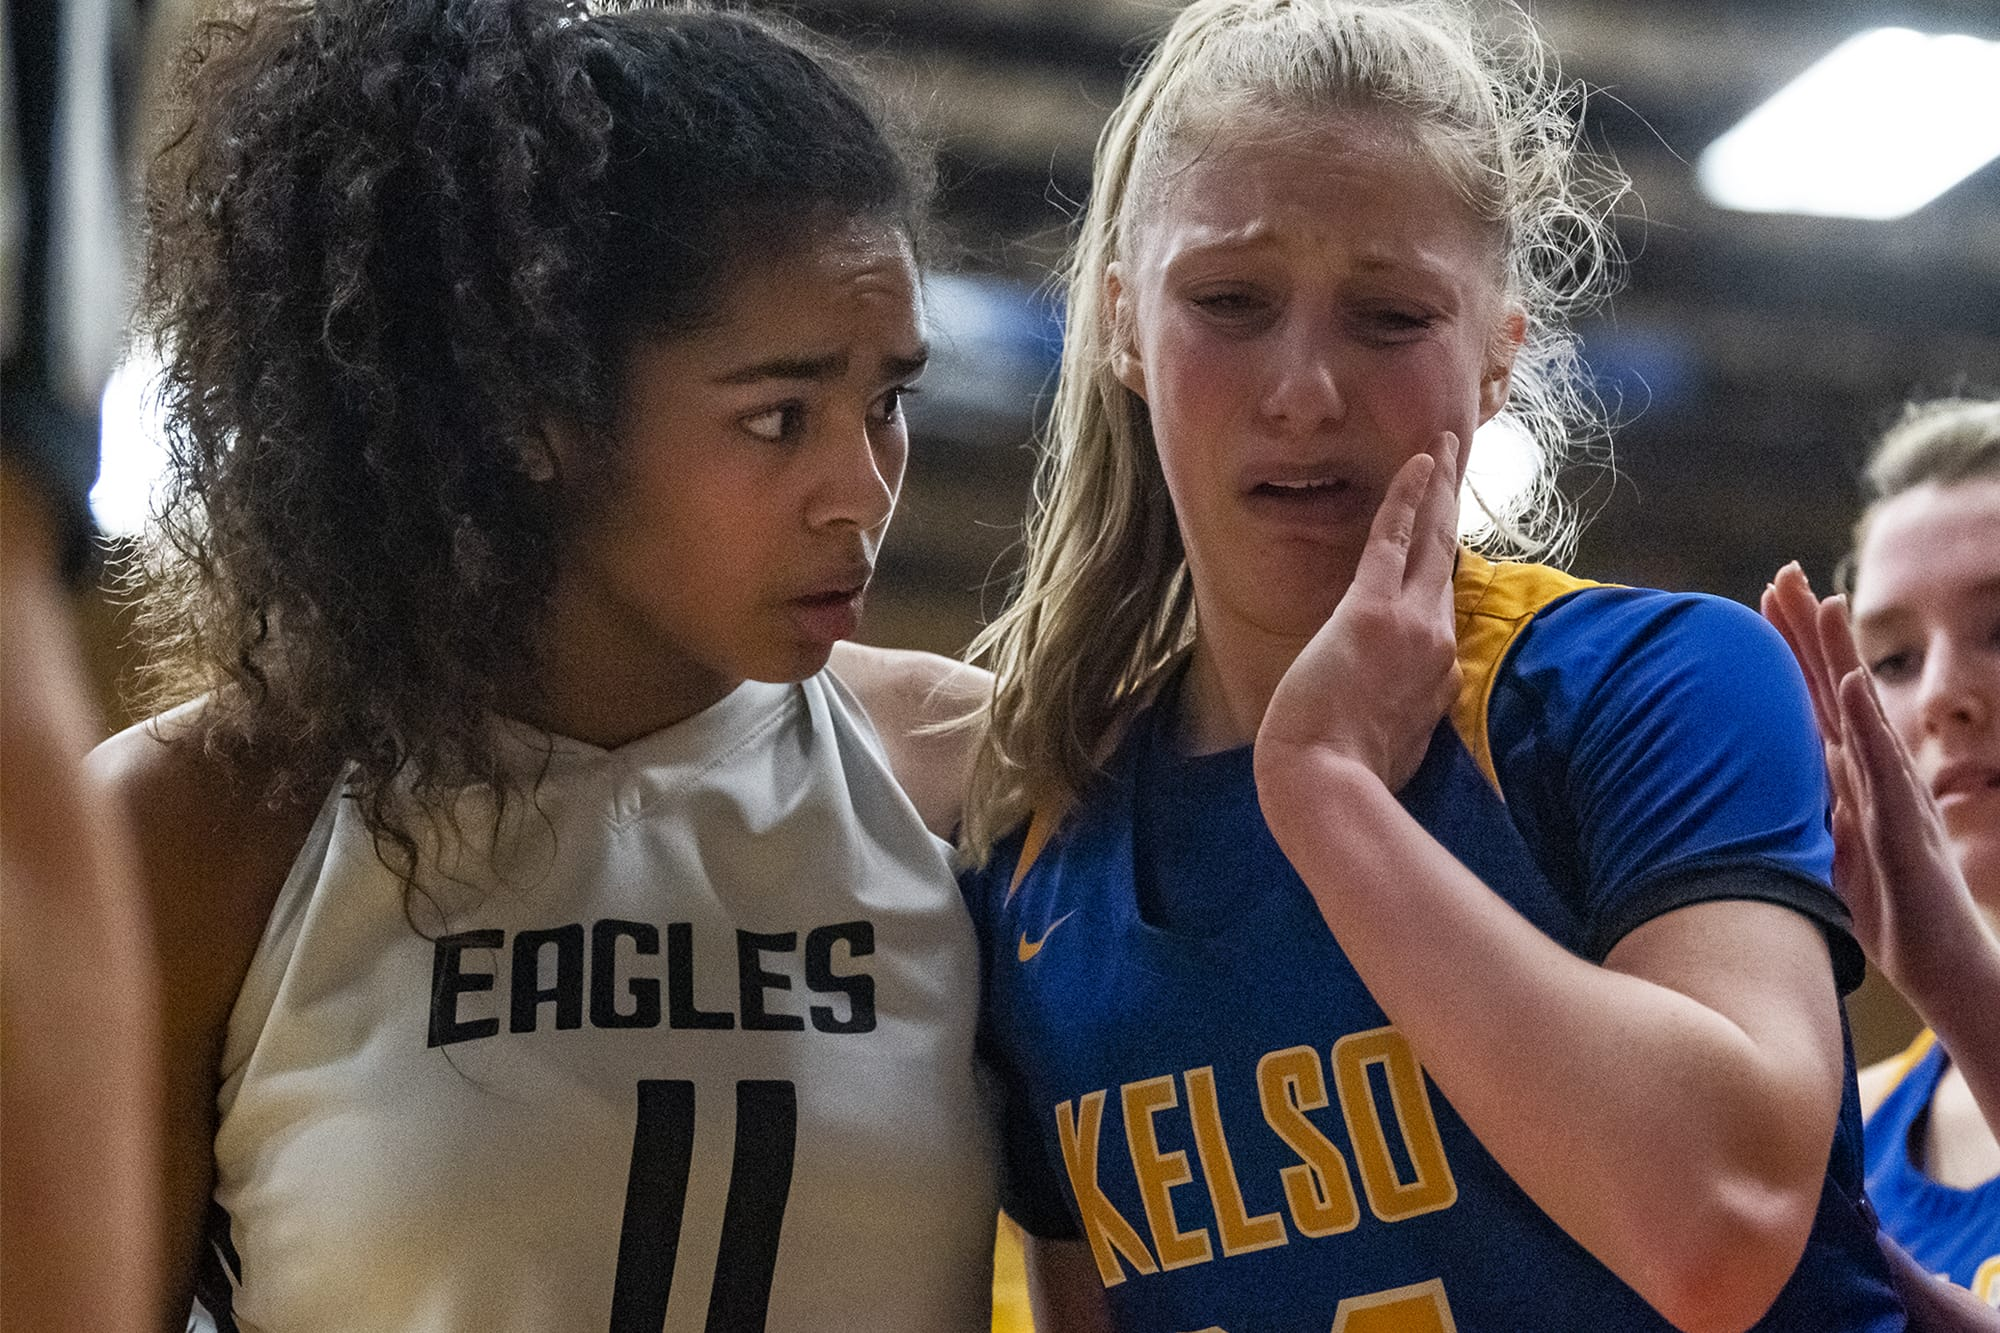 Hudson's Bay's Jaydia Martin, left, checks on Kelso's Natalie Fraley after Fraley was hit in the face on a drive during a game at Mountain View High School on Friday night, Feb. 7, 2020. (Nathan Howard/The Columbian)